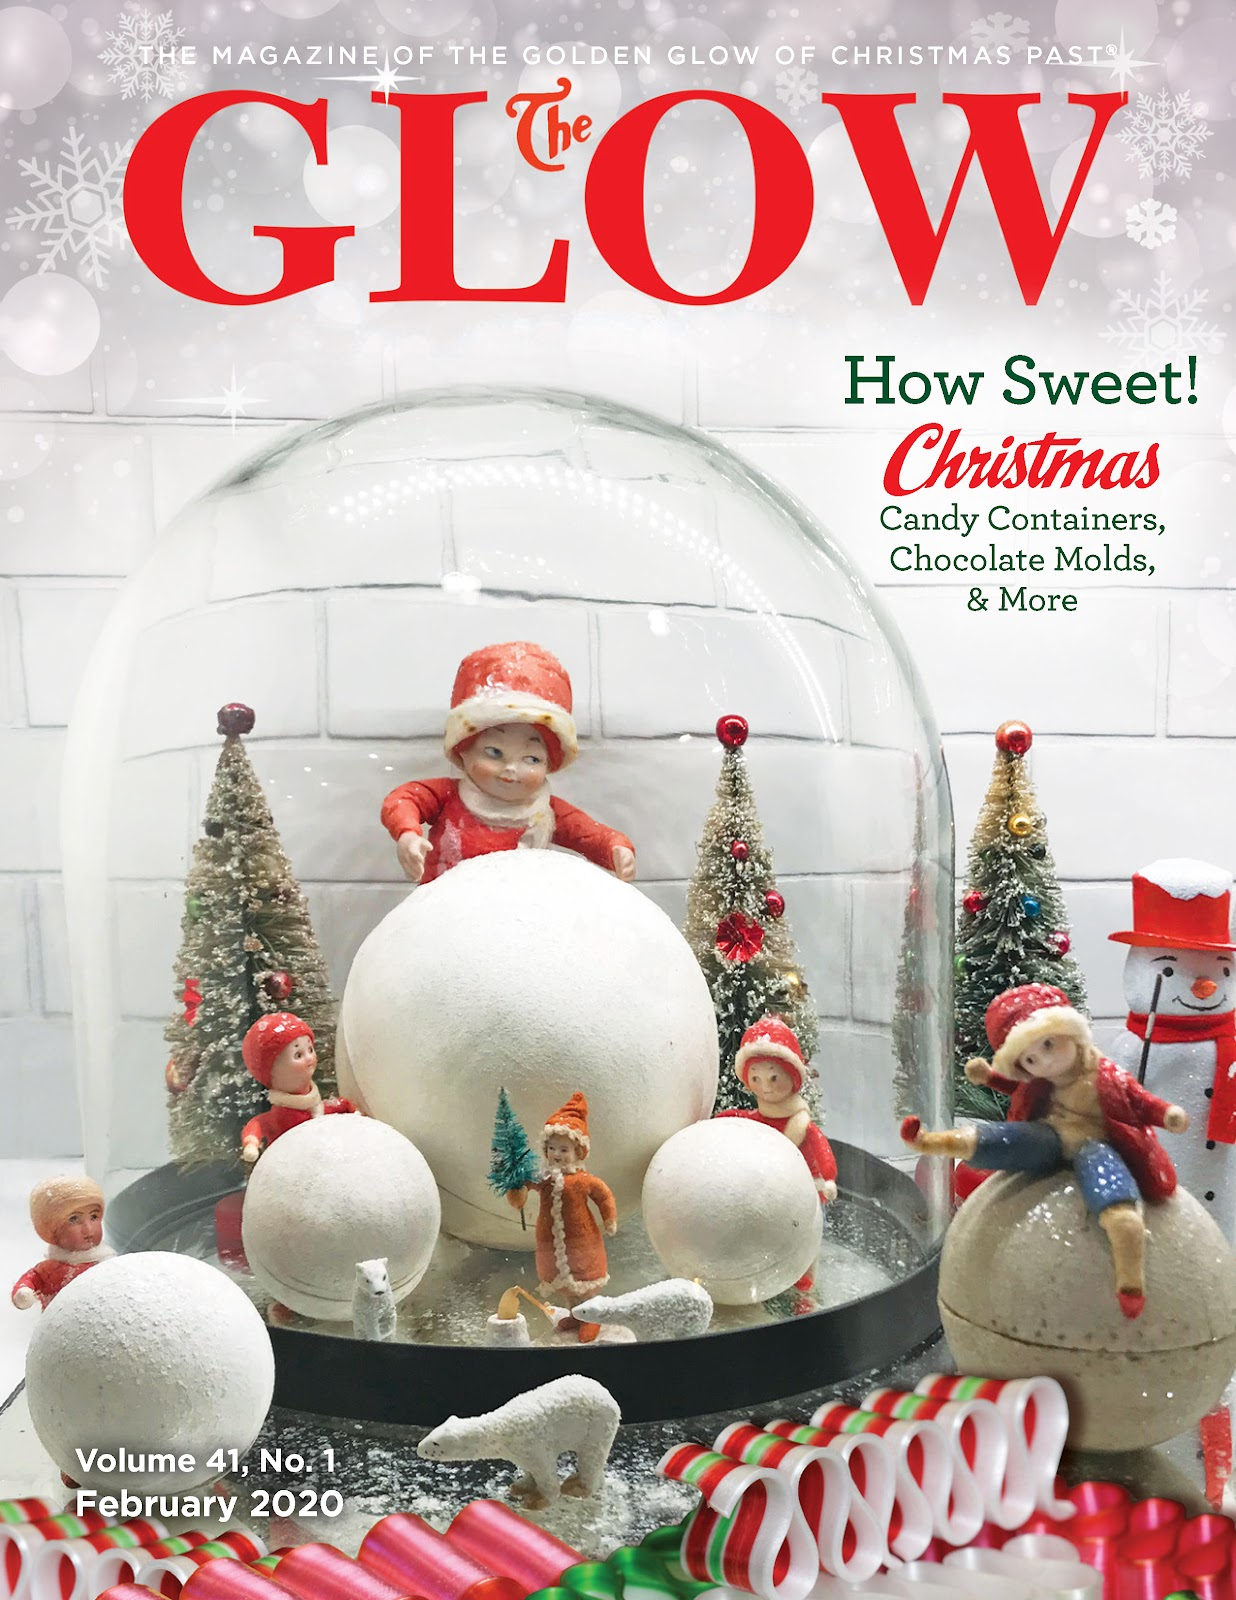 Cover of the February 2020 edition of The GLOW Magazine. Photo courtesy of The Golden Glow of Christmas Past.